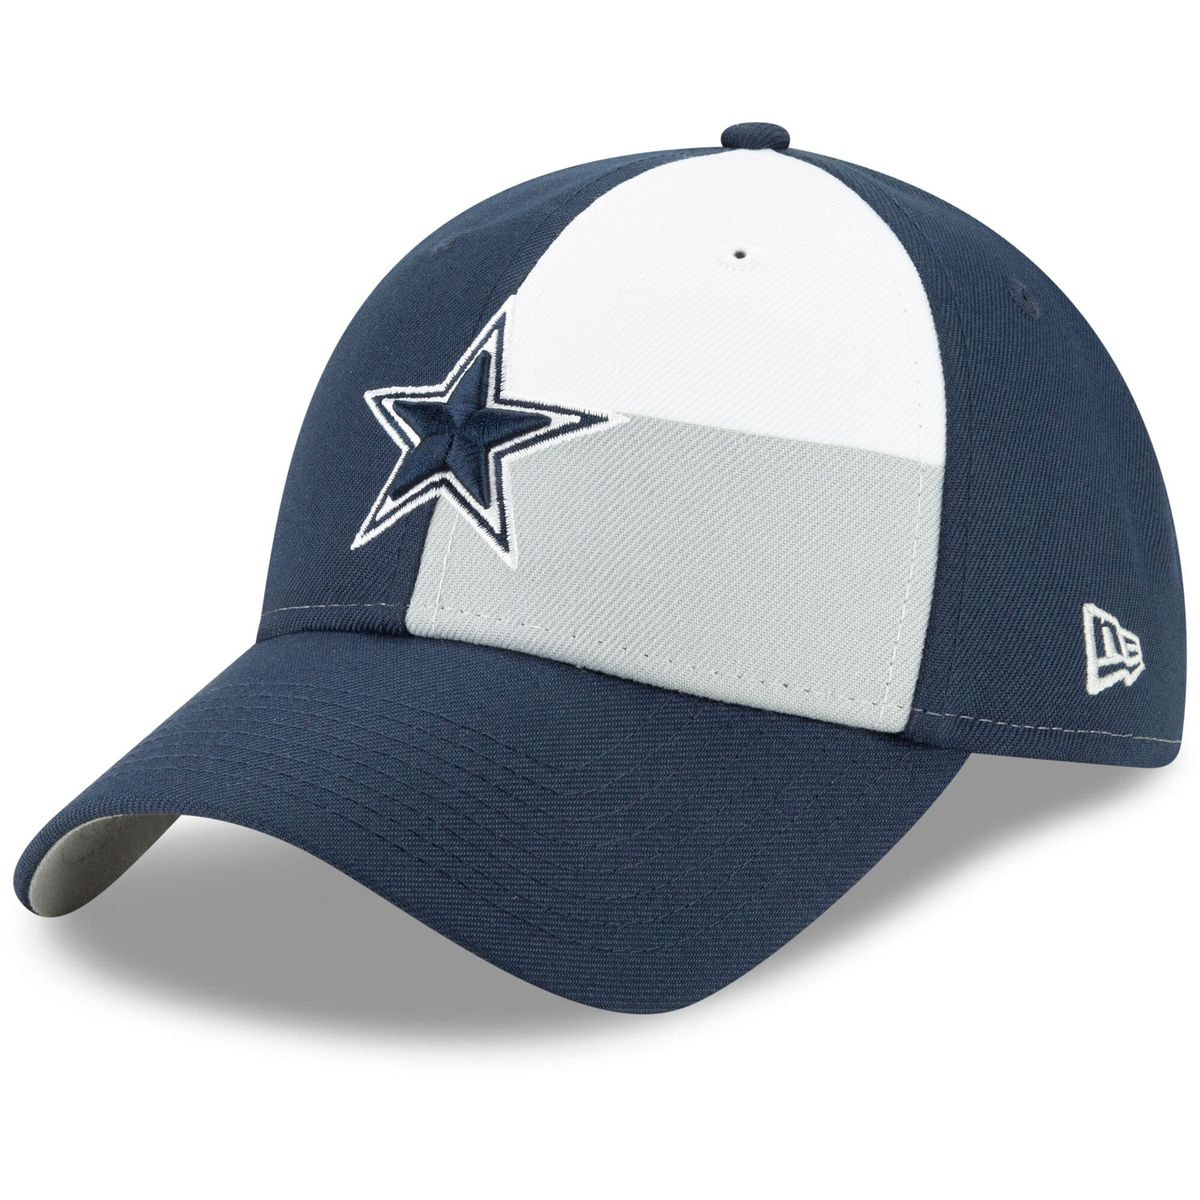 13a73b9f Dallas Cowboys Draft Hats are officially available, and they'll ...